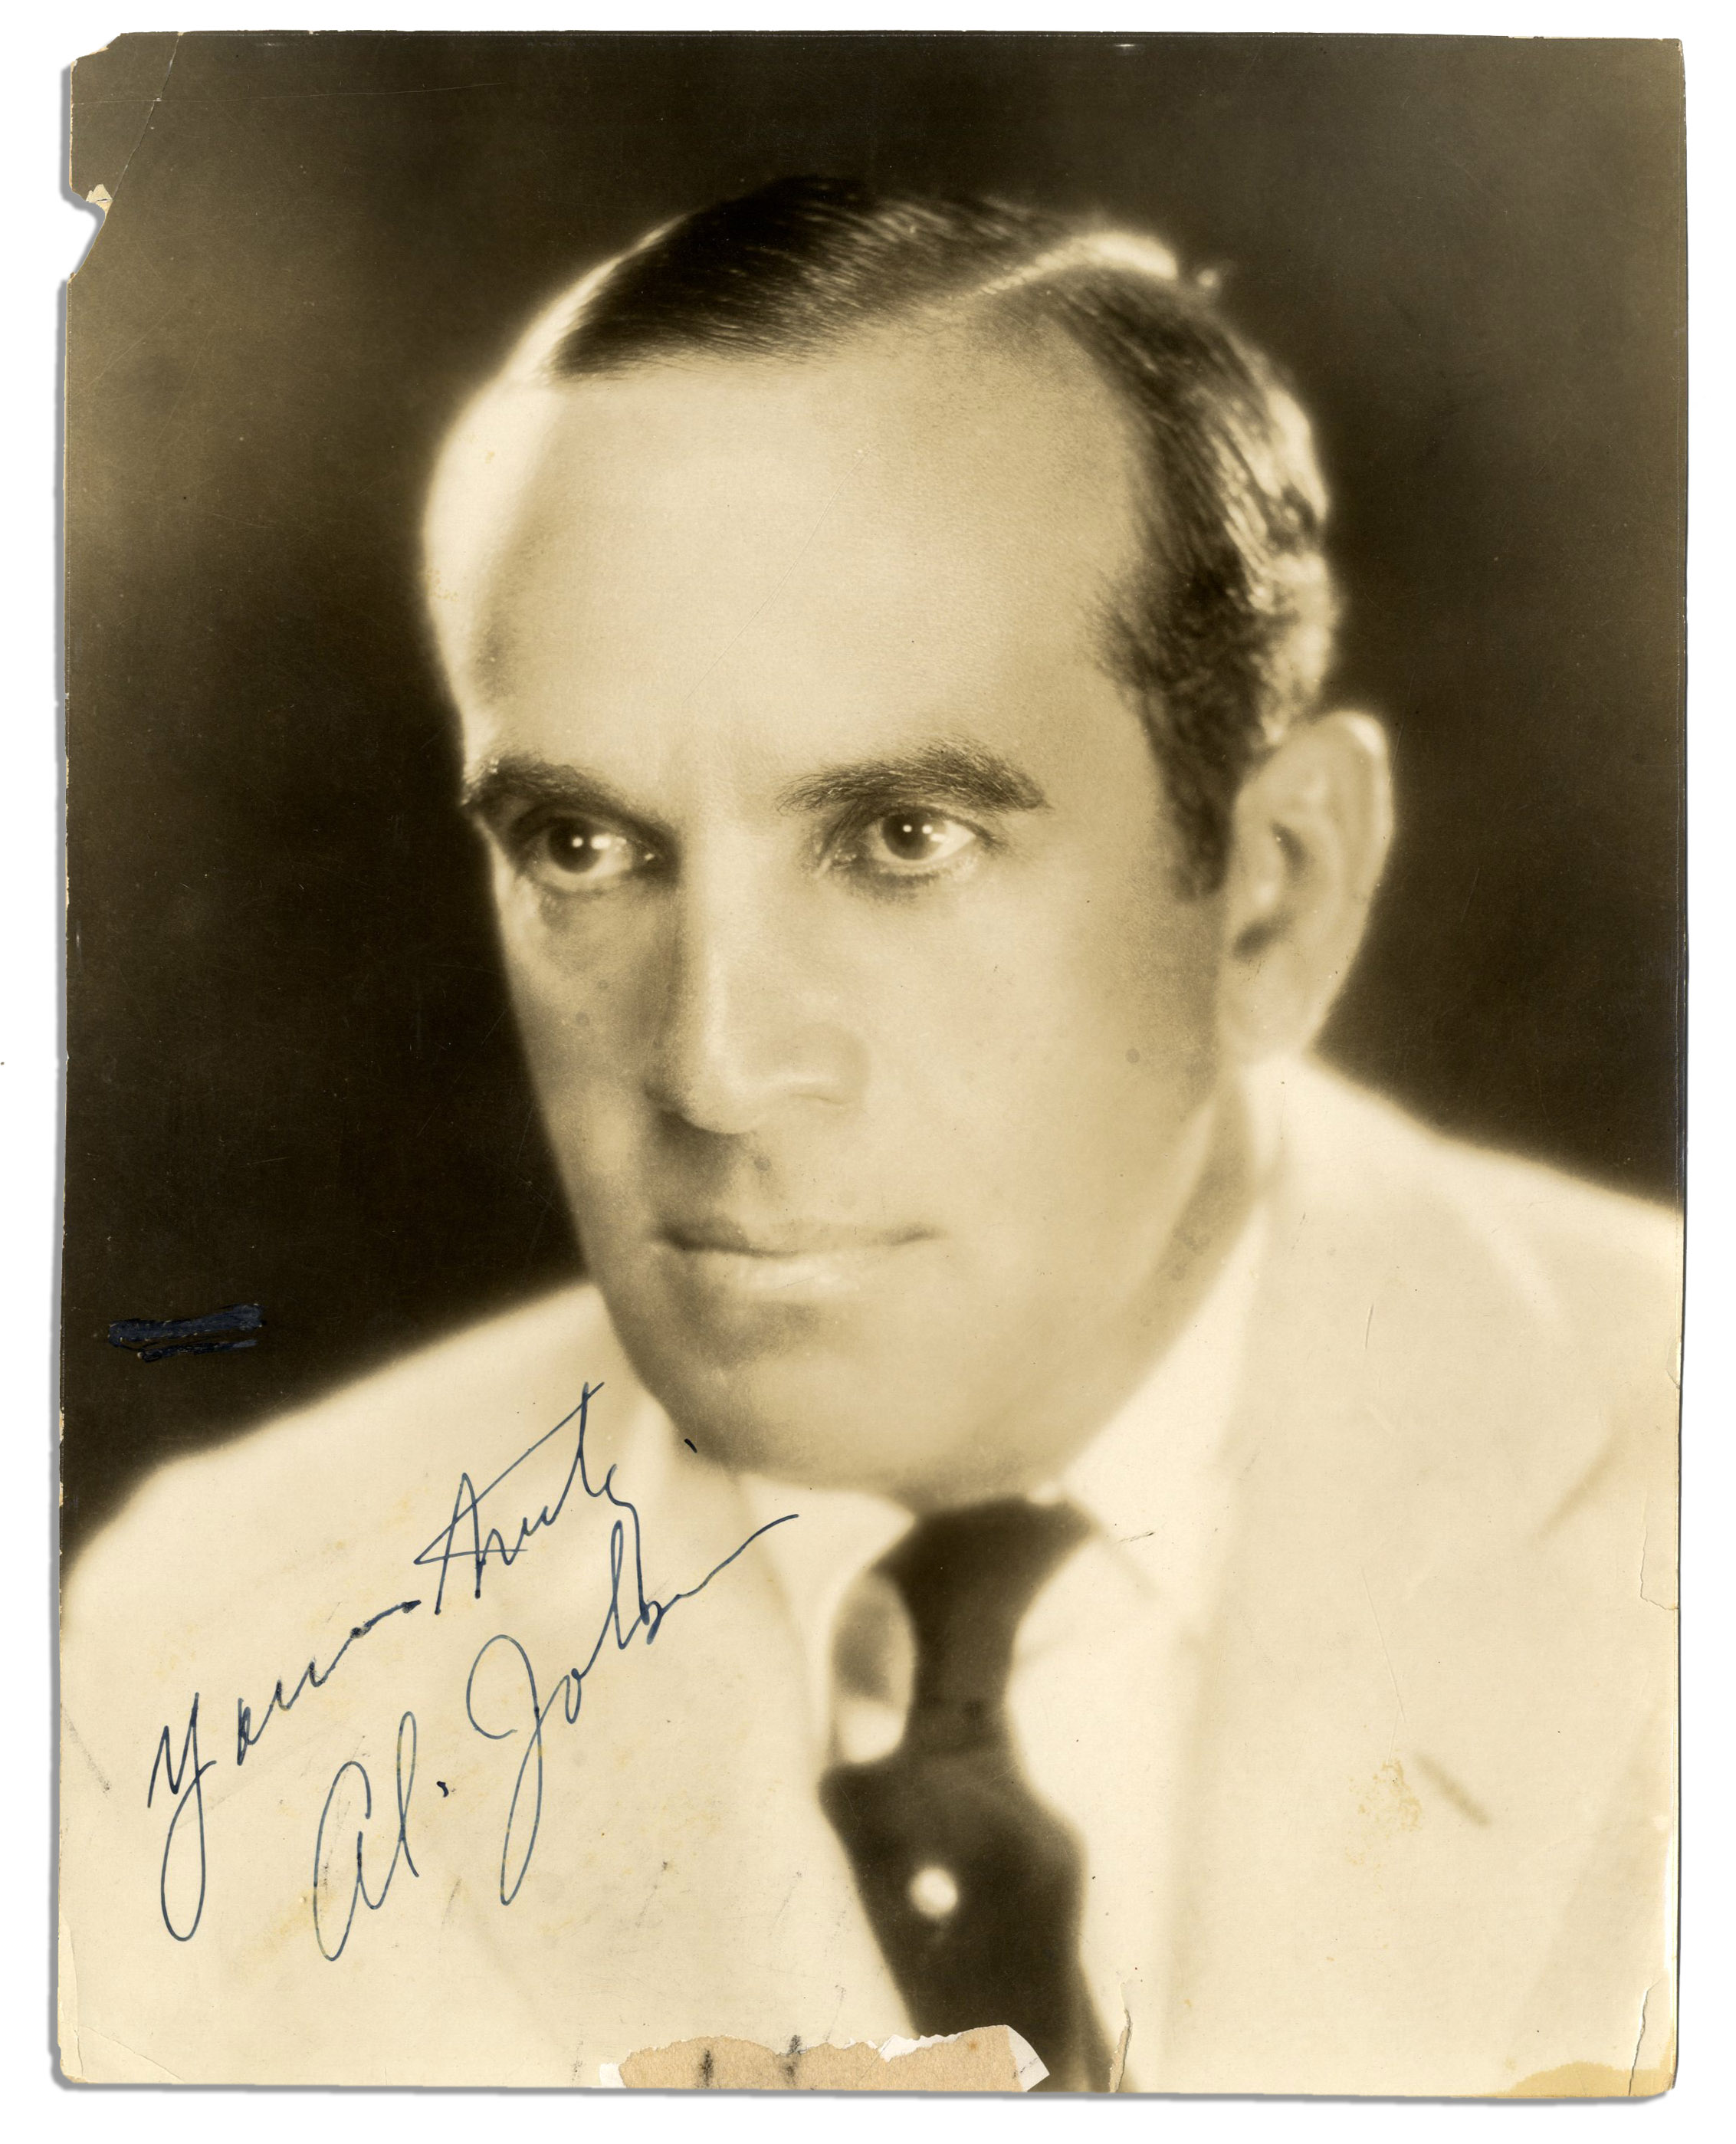 al jolson deathal jolson toot toot tootsie, al jolson mammy, al jolson toot toot tootsie lyrics, al jolson anniversary song, al jolson sitting on top of the world, al jolson youtube, al jolson death, al jolson song, al jolson imdb, al jolson avalon, al jolson carolina in the morning, al jolson - april showers, al jolson sonny boy, al jolson swanee, al jolson on top of the world, al jolson sweet sixteen, al jolson a quarter to nine, al jolson youtube mammy, al jolson born, al jolson the anniversary song mp3